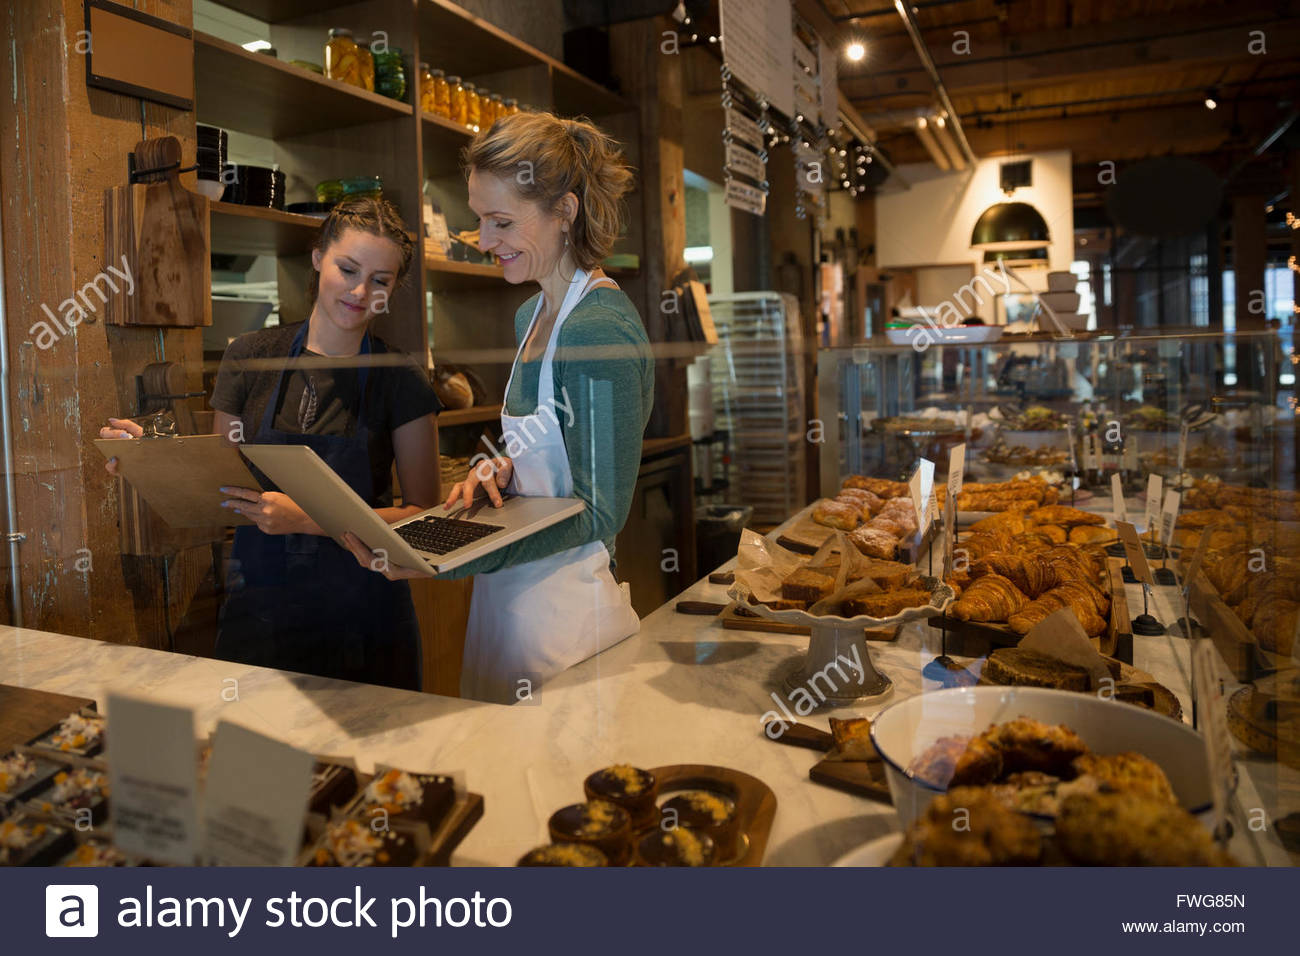 Bakery owner and worker with laptop and clipboard - Stock Image